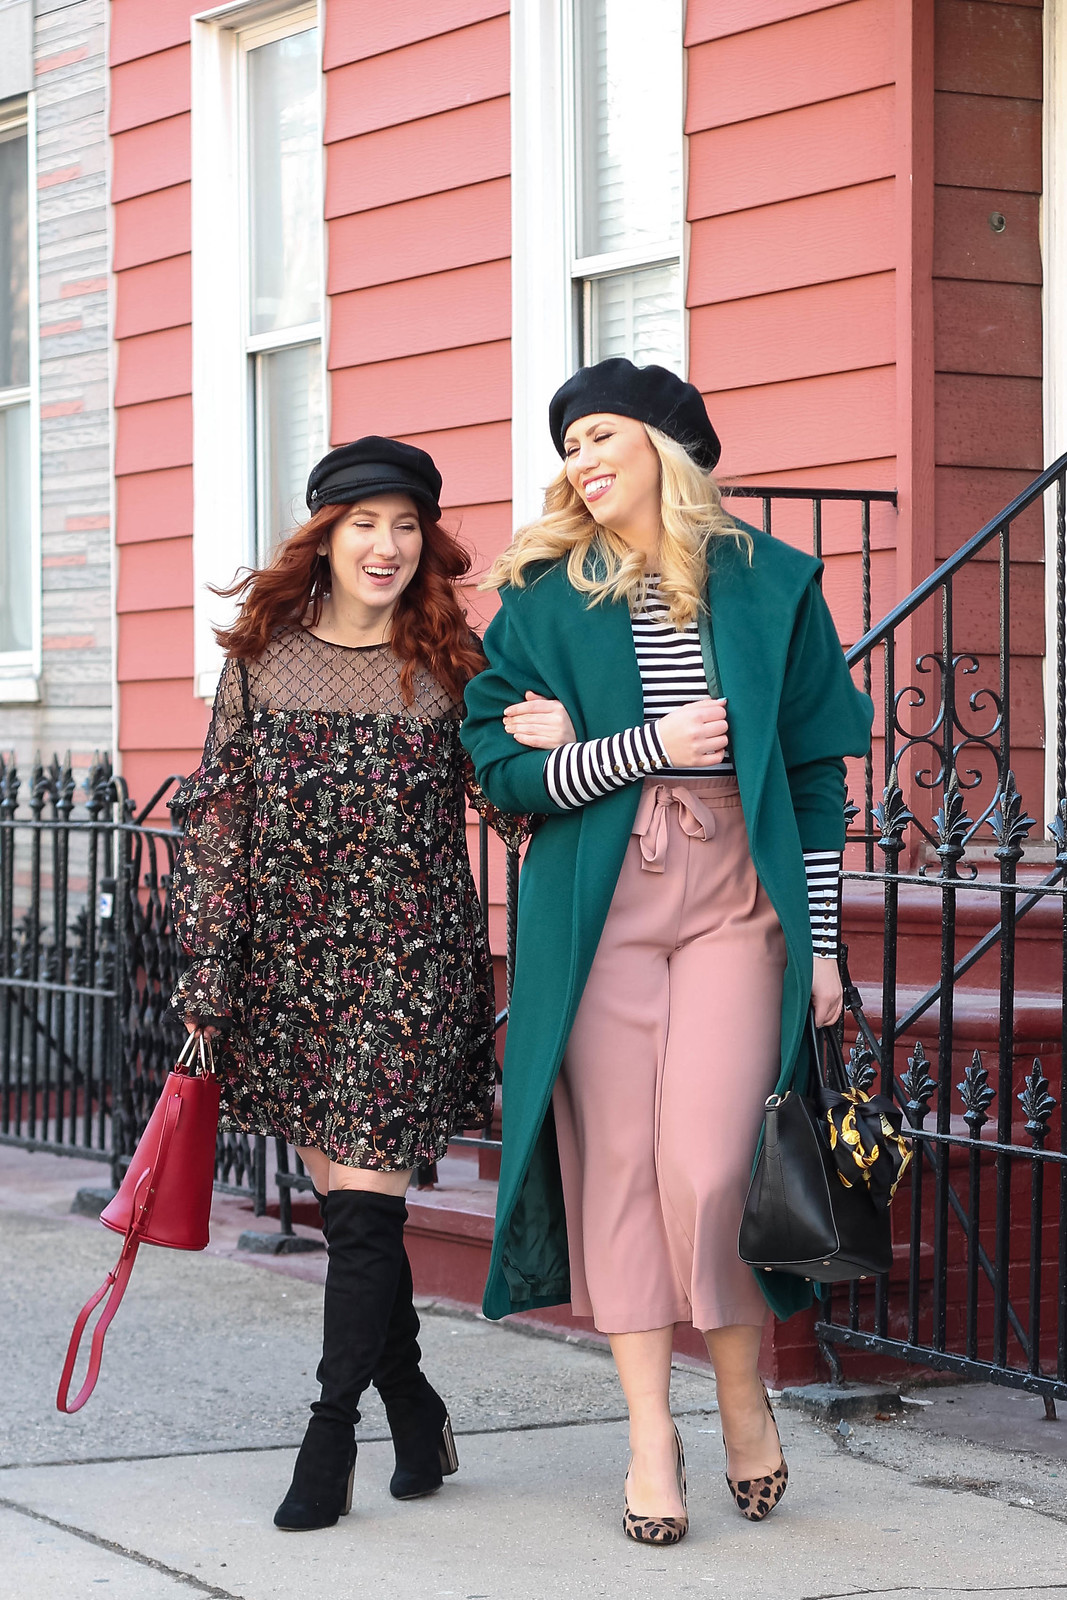 Blogger Friends Winter Hats Vintage Inspired Outfits Style Inspiration